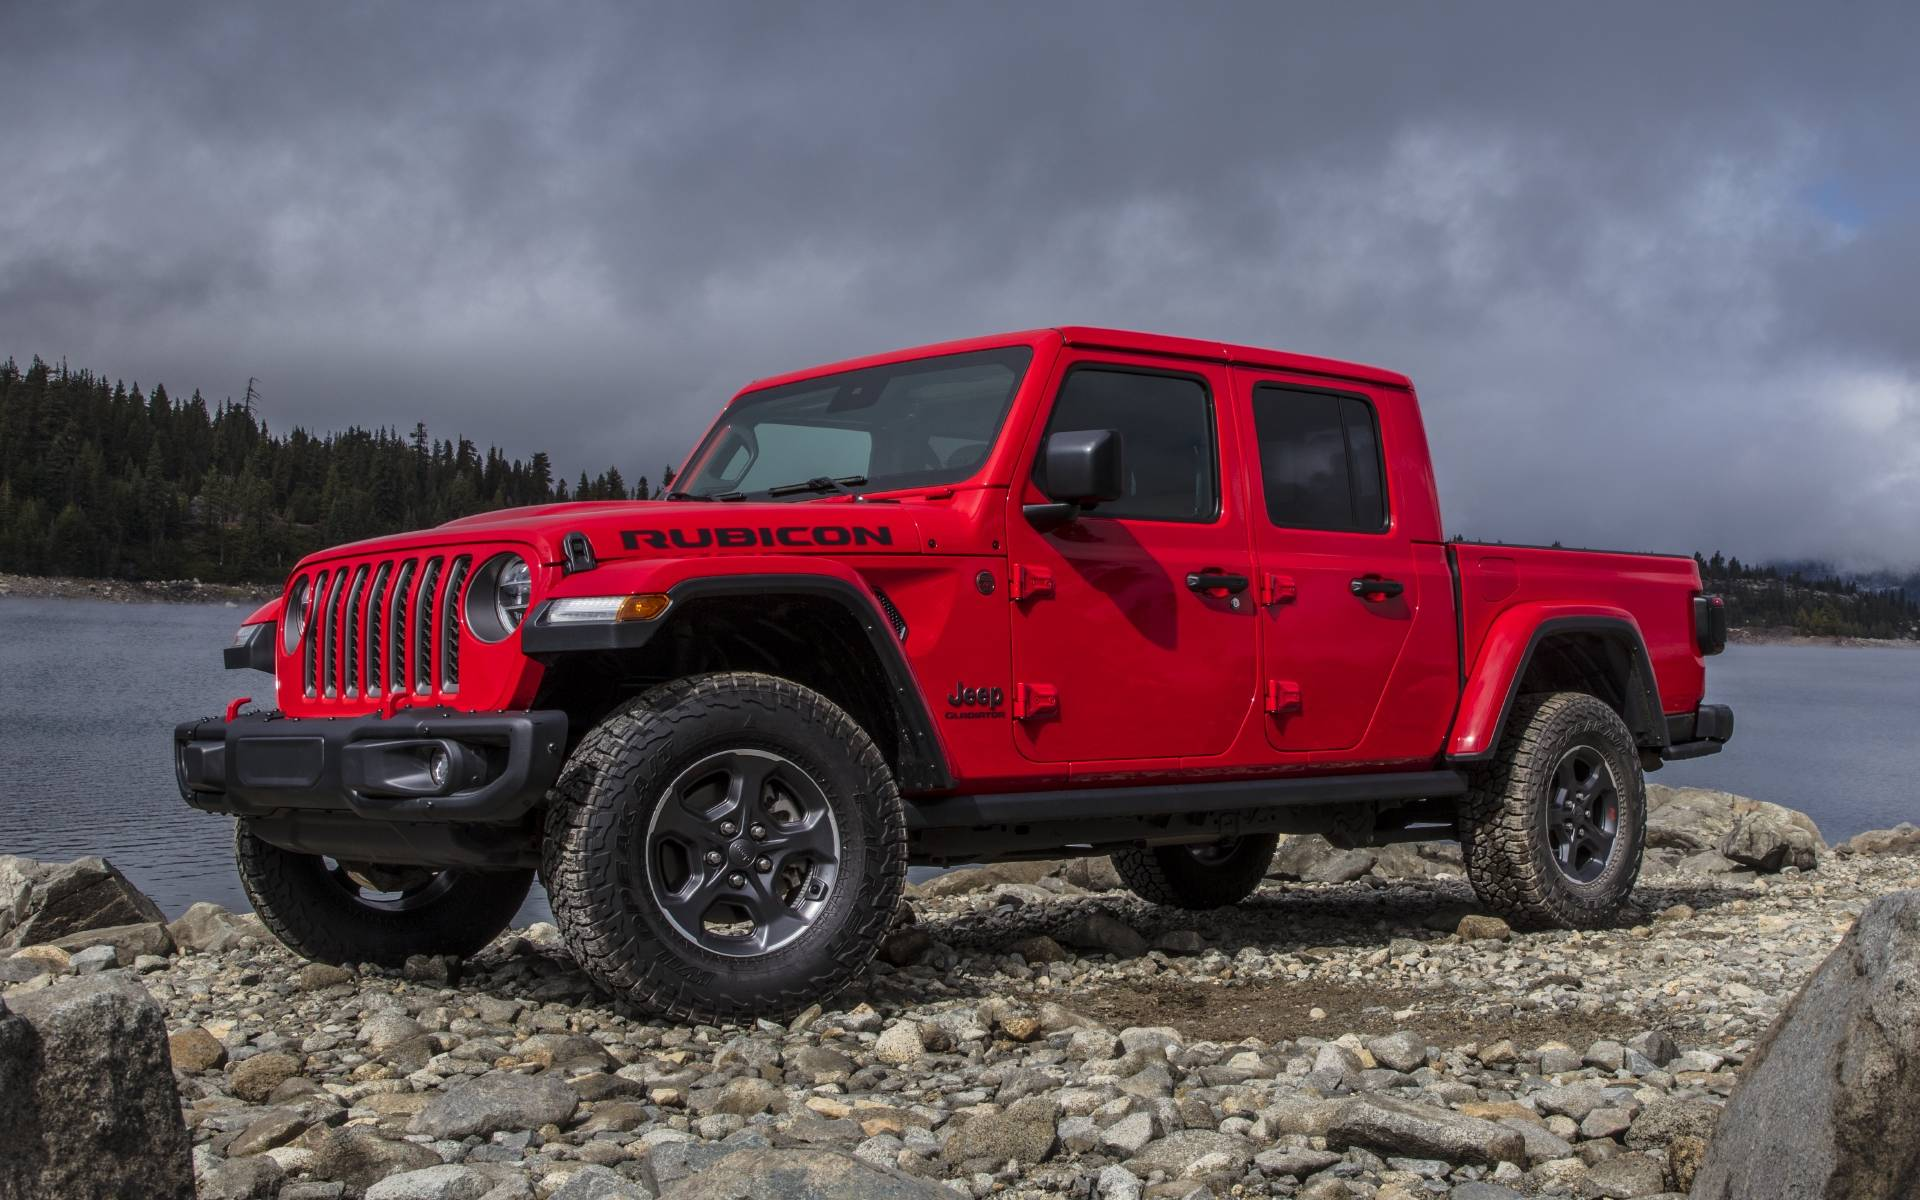 2020 Jeep Gladiator Rubicon Specifications The Car Guide